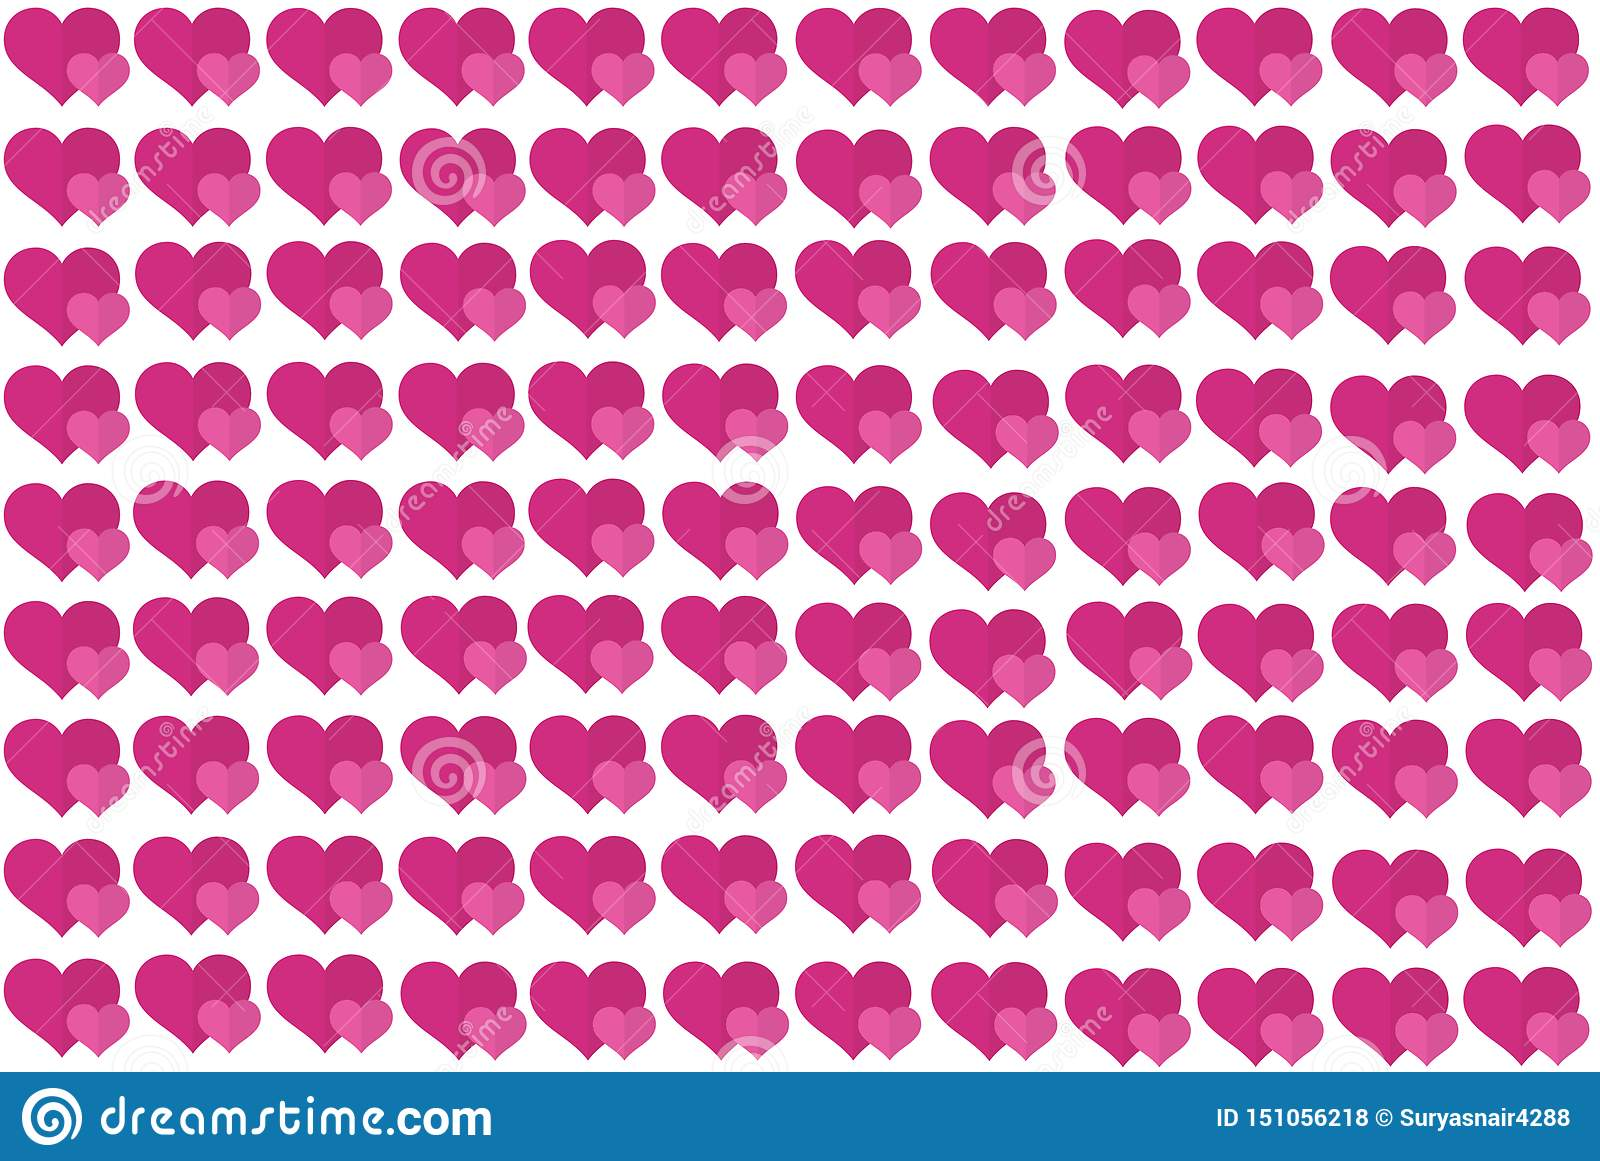 Pink Heart Shape on White Background. Hearts Dot Design. Can be used for Articles, Printing, Illustration purpose, background,